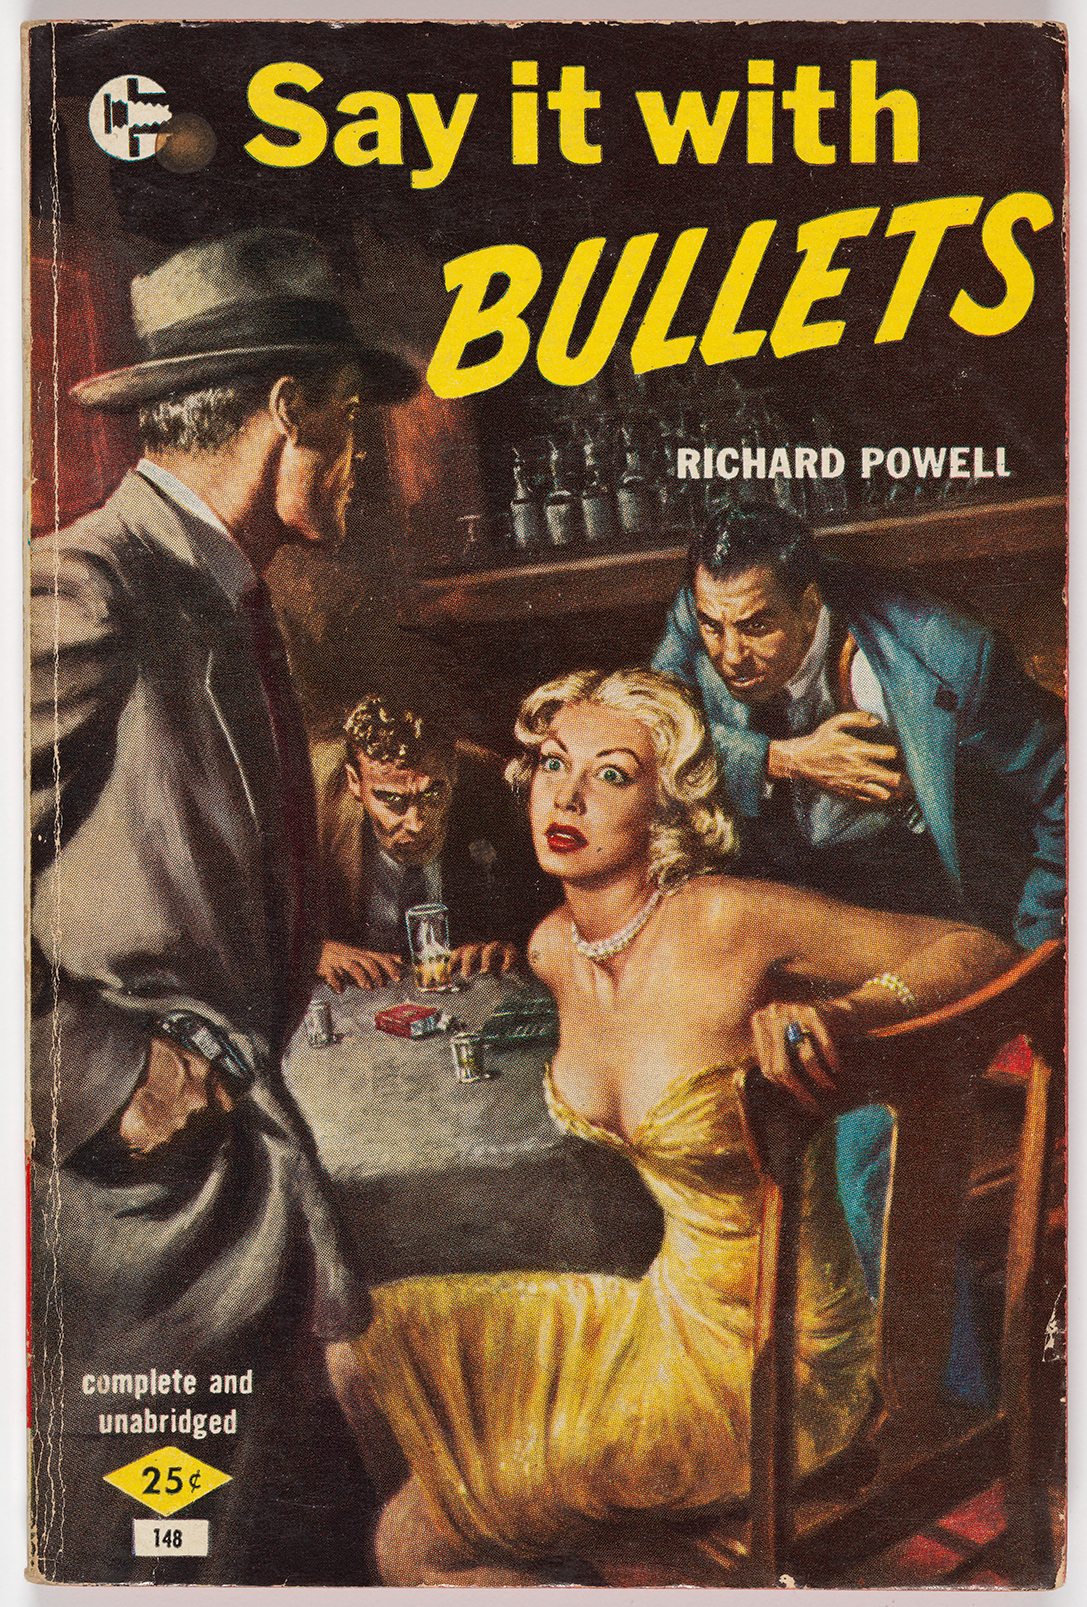 "The cover of this novel by Richard Powell shows a woman sitting at a table in what appears to be a restaurant with two grimacing men seated alongside her. She looks stunned, wheareas the men are hunching their shoulders menacingly towards her and fixing their gazes on her. A man dressed like a detective stands next to her, one hand submerged in his pocket and holding a visible gun. There is a yellow 25 cents sticker in the bottom left corner of the cover, and the title of the novel appears in bold yellow font, with ""BULLETS"" italicized and in all capital letters."